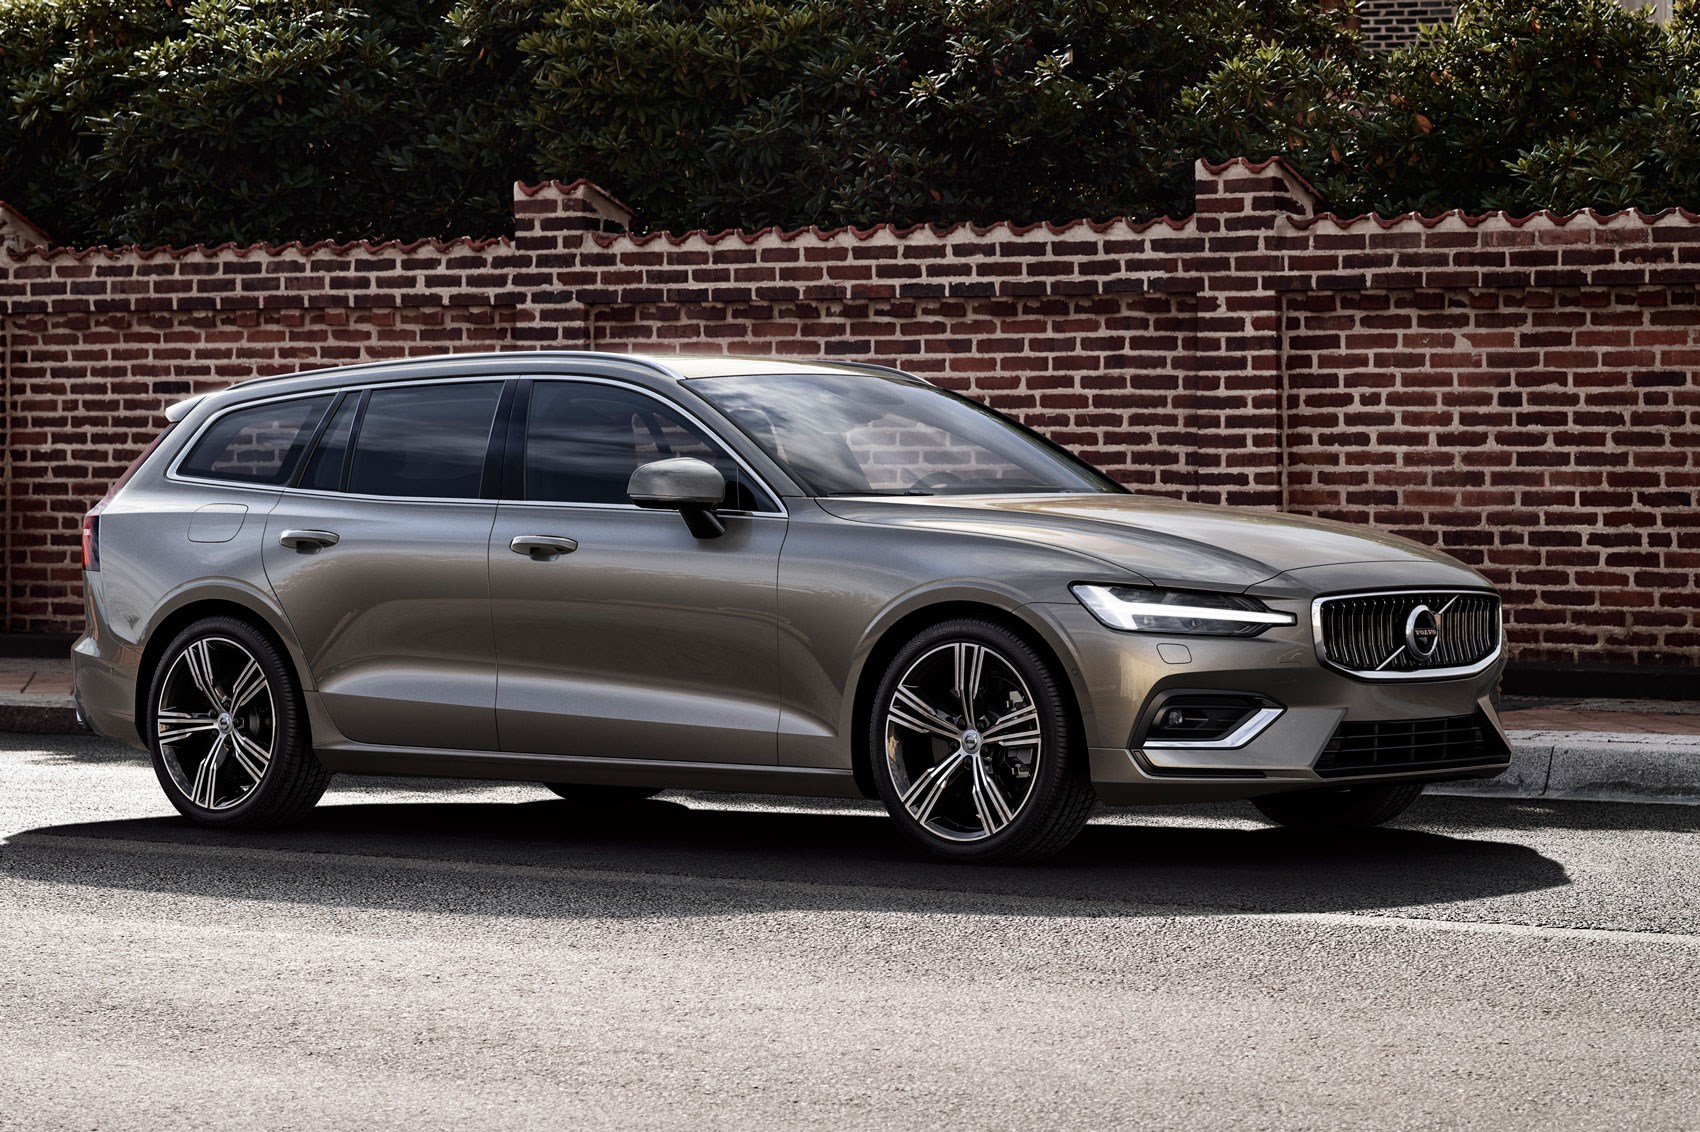 volvo v60 estate 2018 interior uk price and release date car magazine. Black Bedroom Furniture Sets. Home Design Ideas